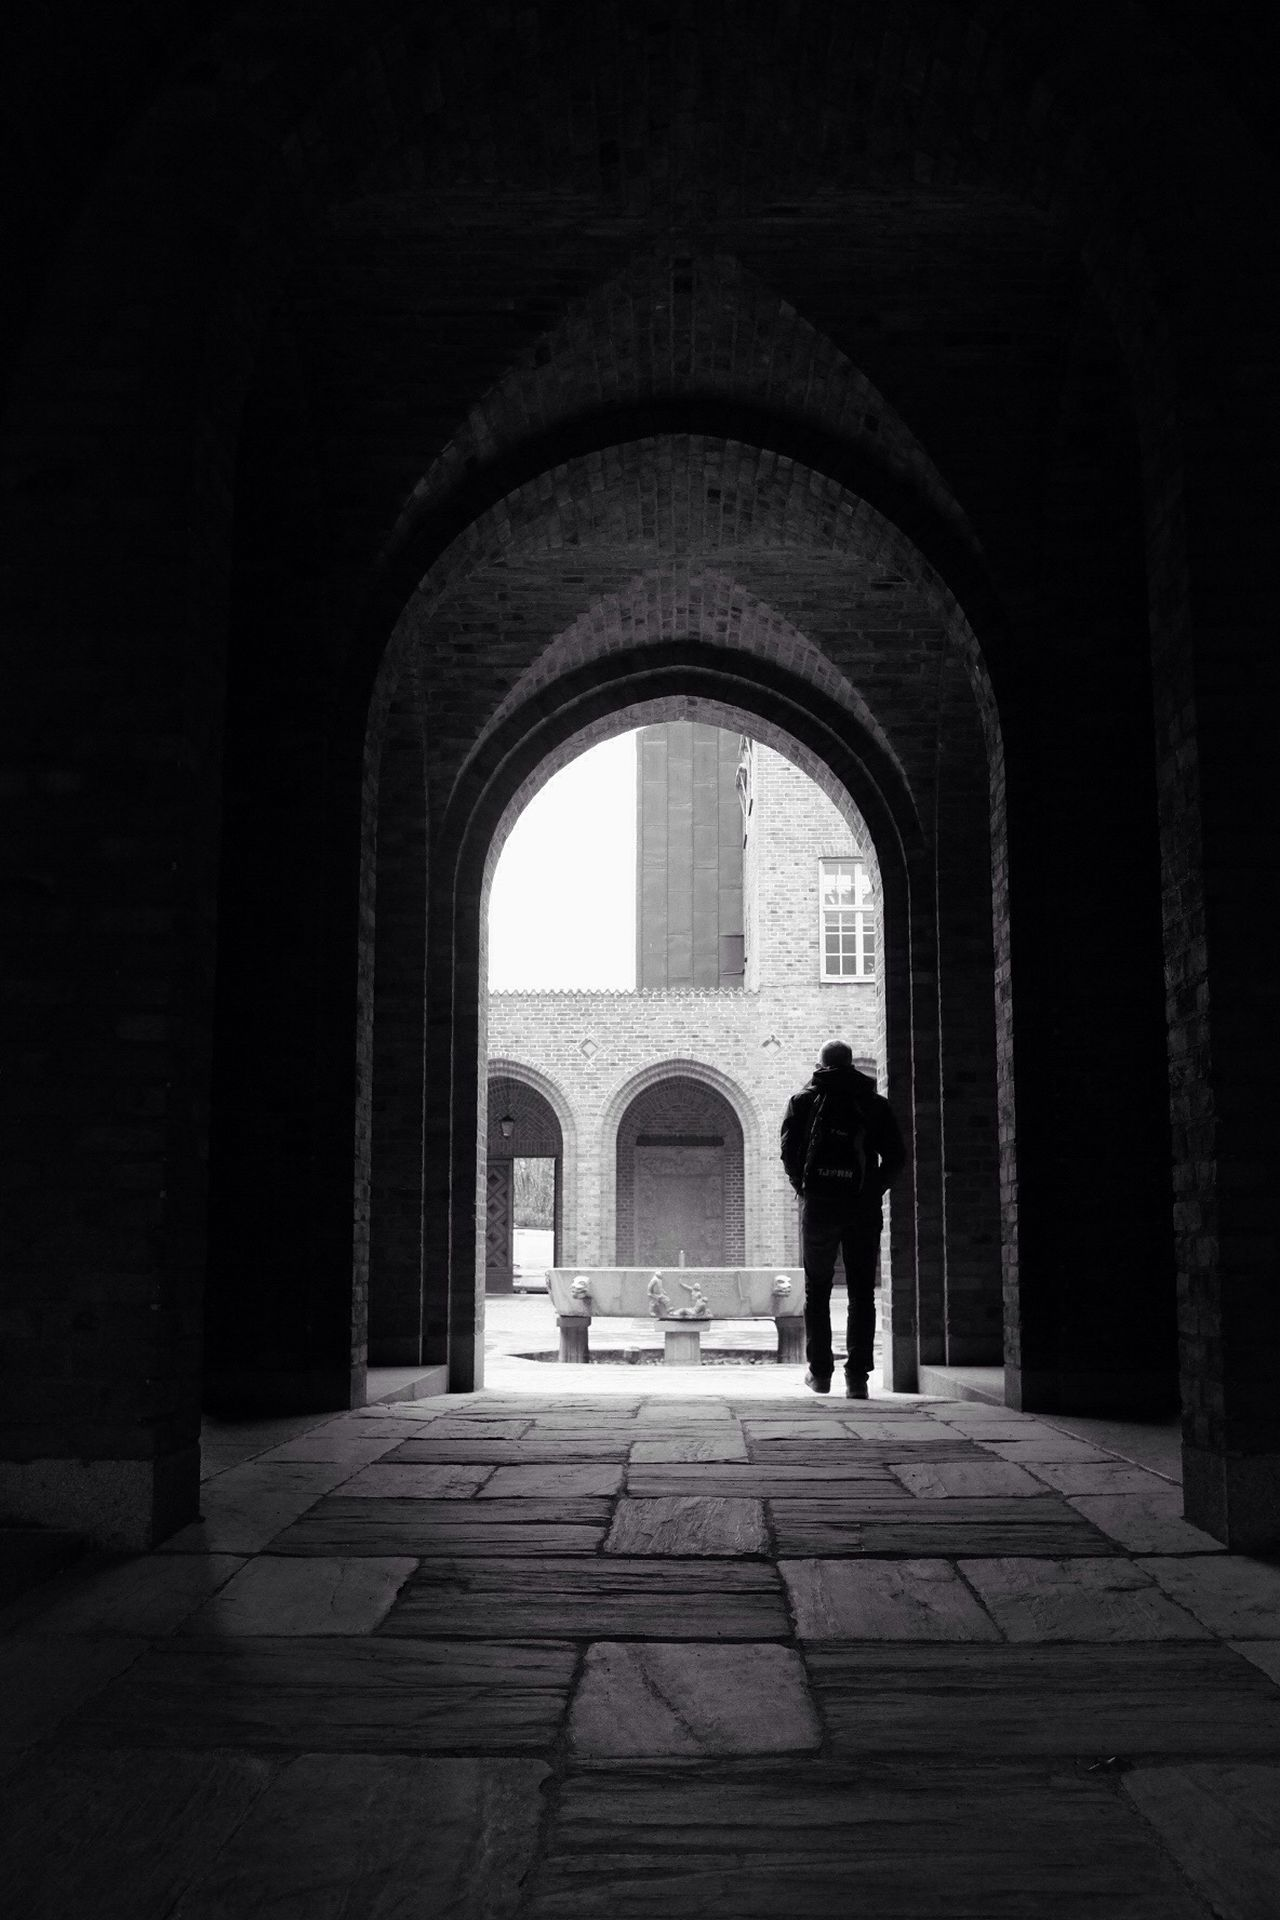 Arch Architecture Street Photography Shootermag Bw_collection Black And White Monochrome Darkness And Light